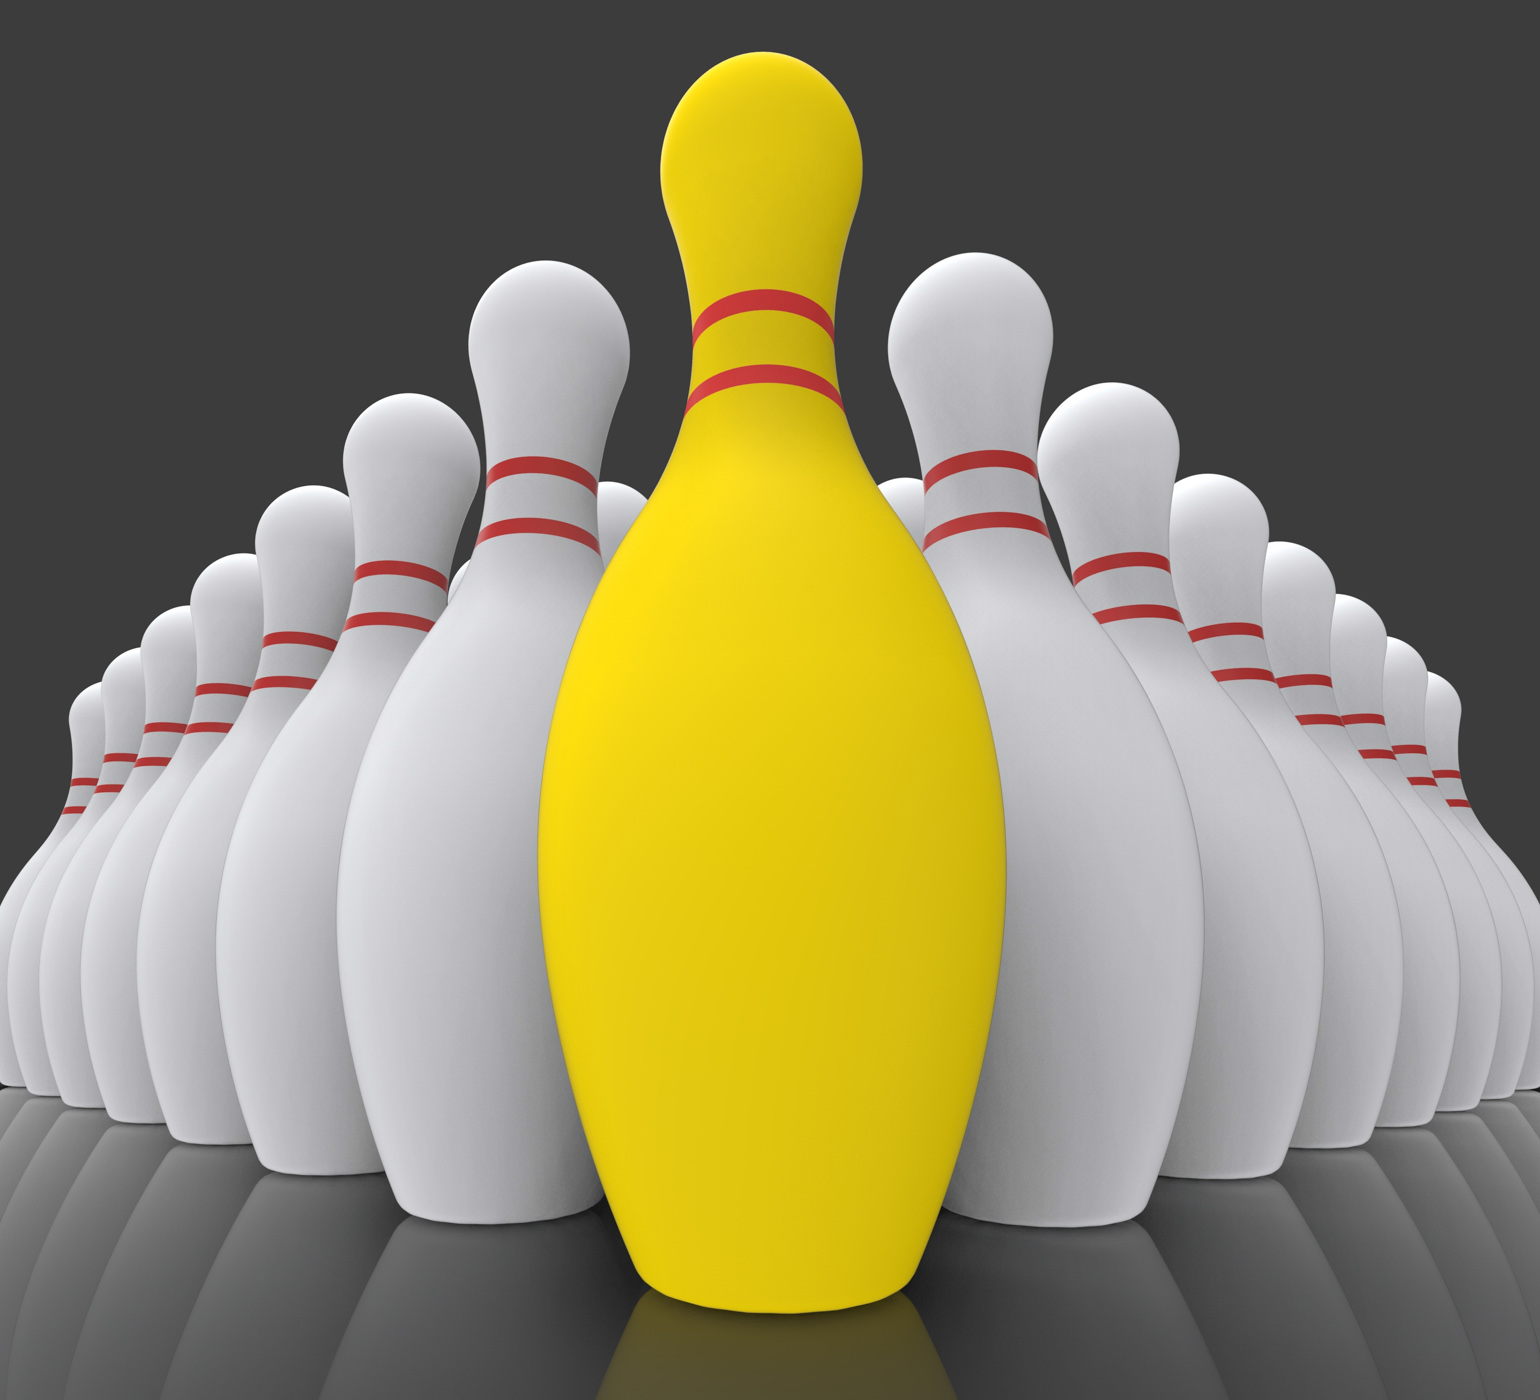 Vision bowling skittles showing achieving photo